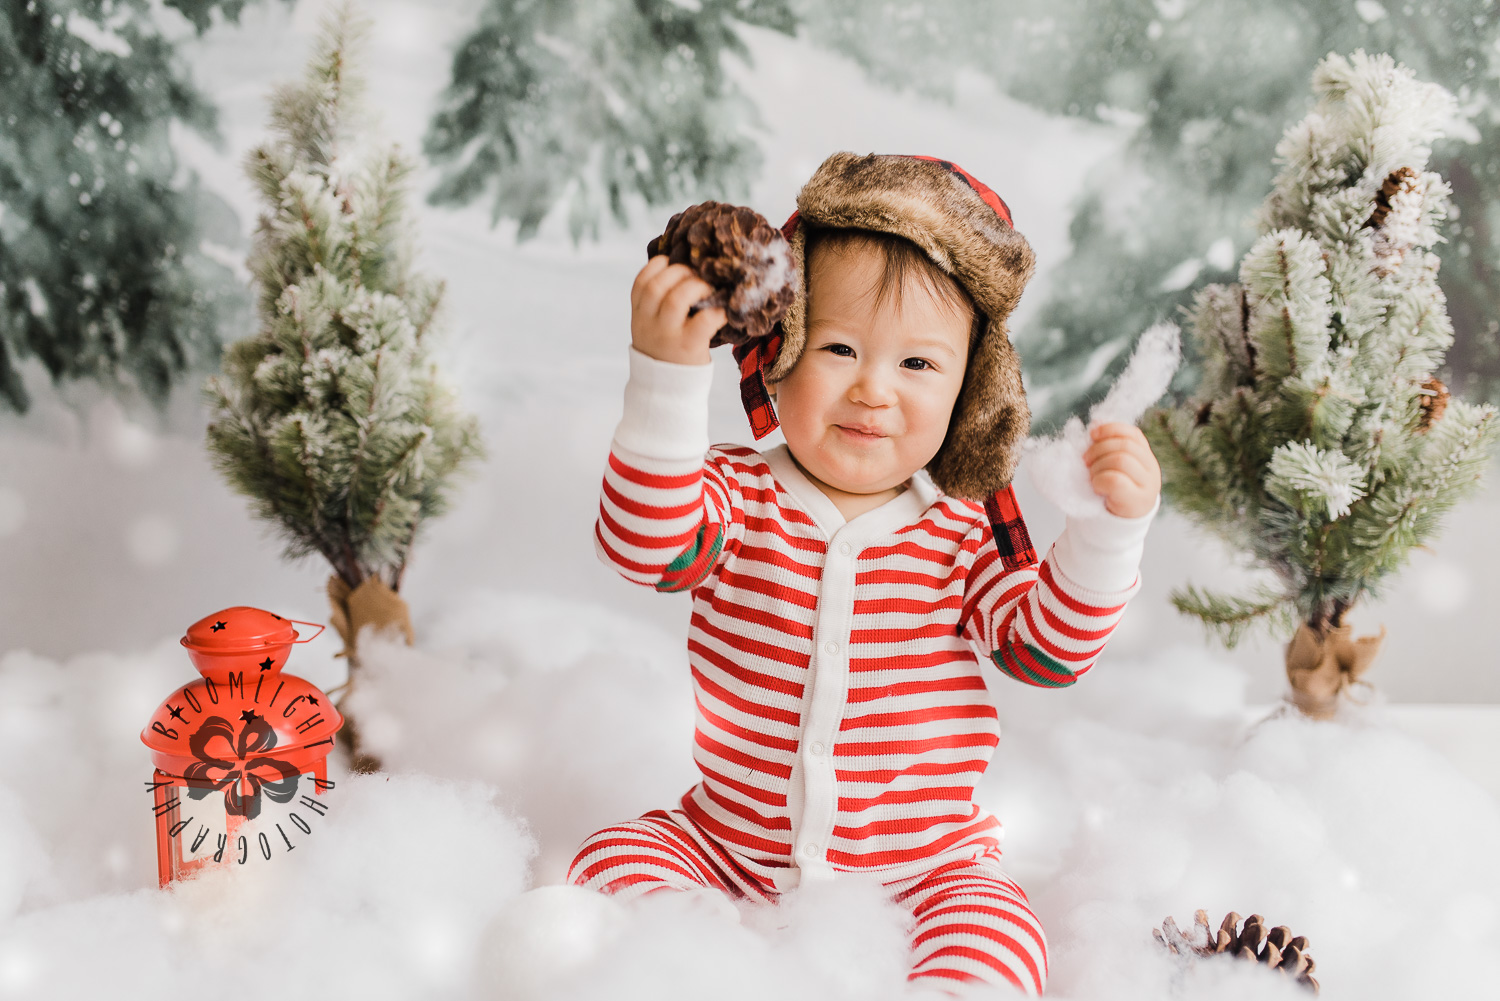 Christmas photo of a baby boy holding pine cone